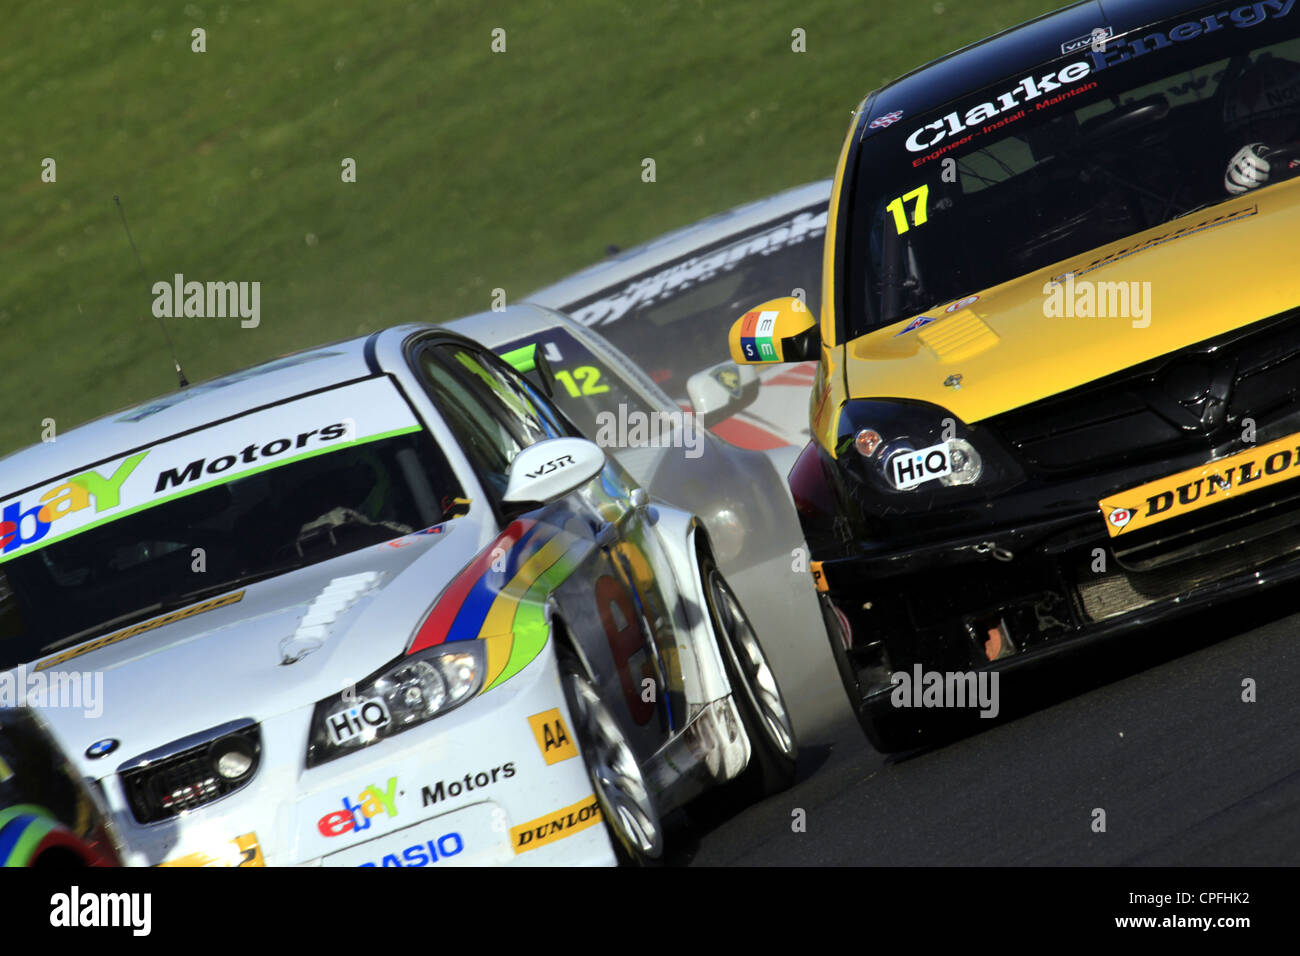 Close up of British Touring Cars in tight racing formation going from McClaren into Clarke Curve at Brands Hatch - Stock Image